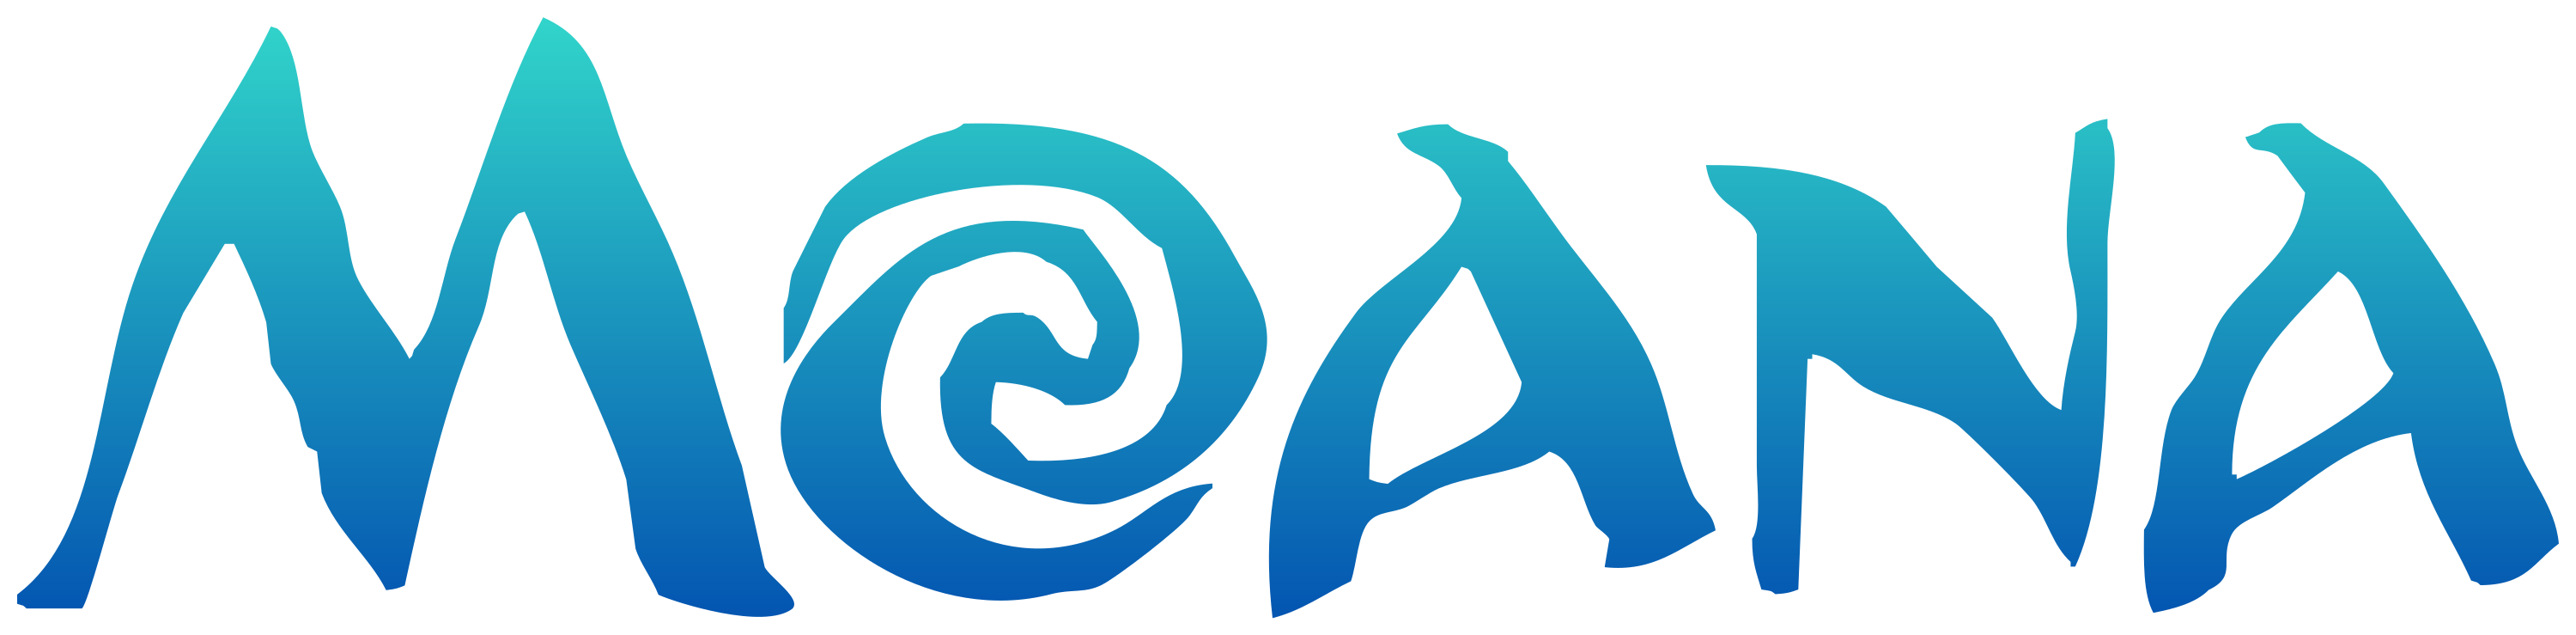 png freeuse File svg wikimedia commons. Moana clipart symbol.